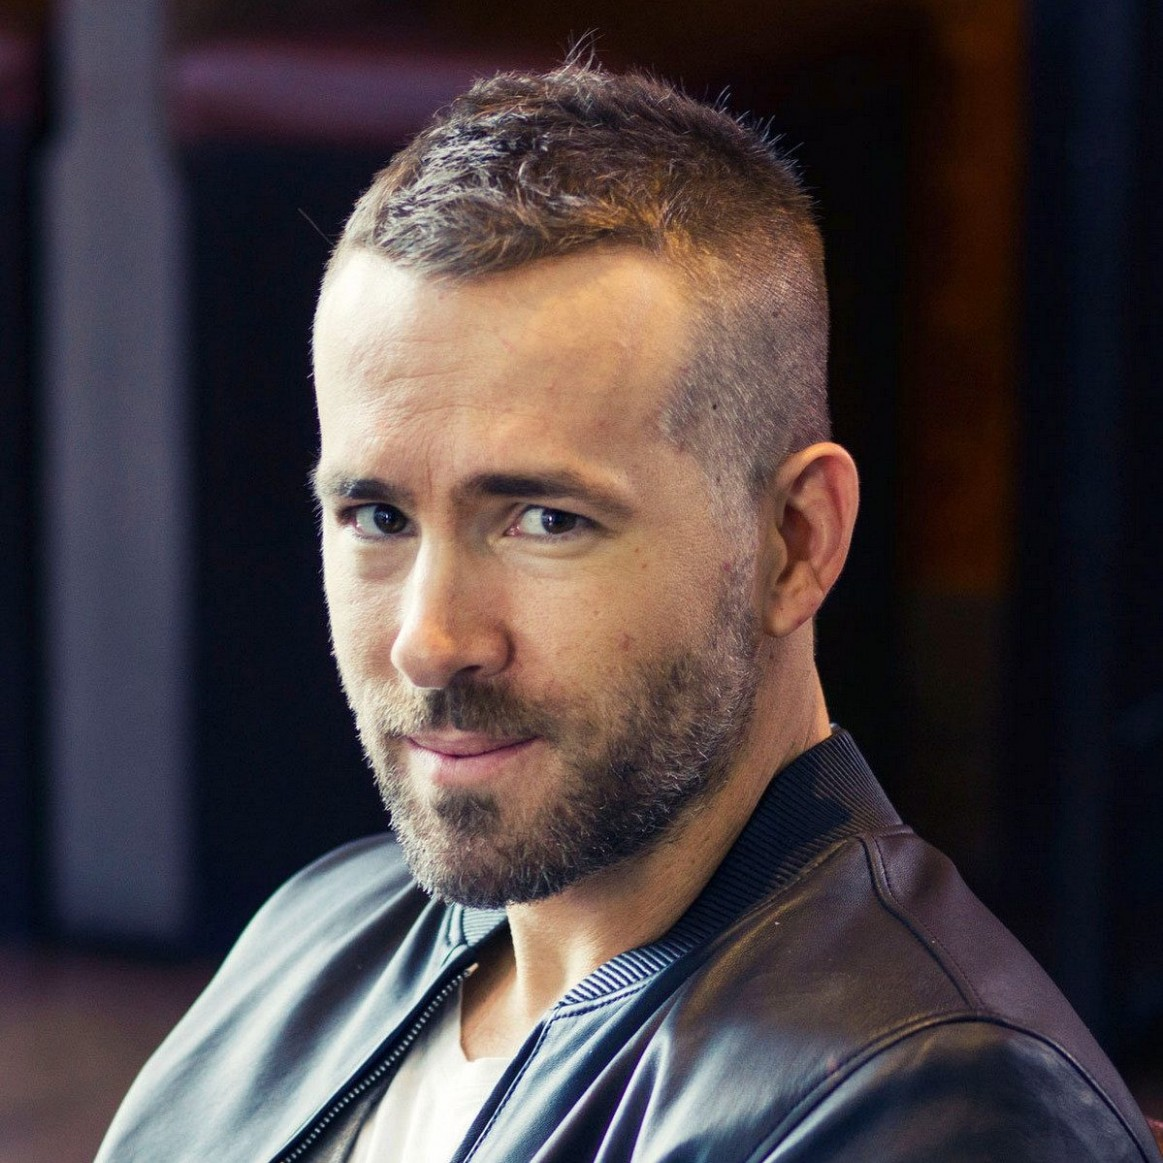 The High And Tight Haircut: 10 Modern Styles Of A Classic Look